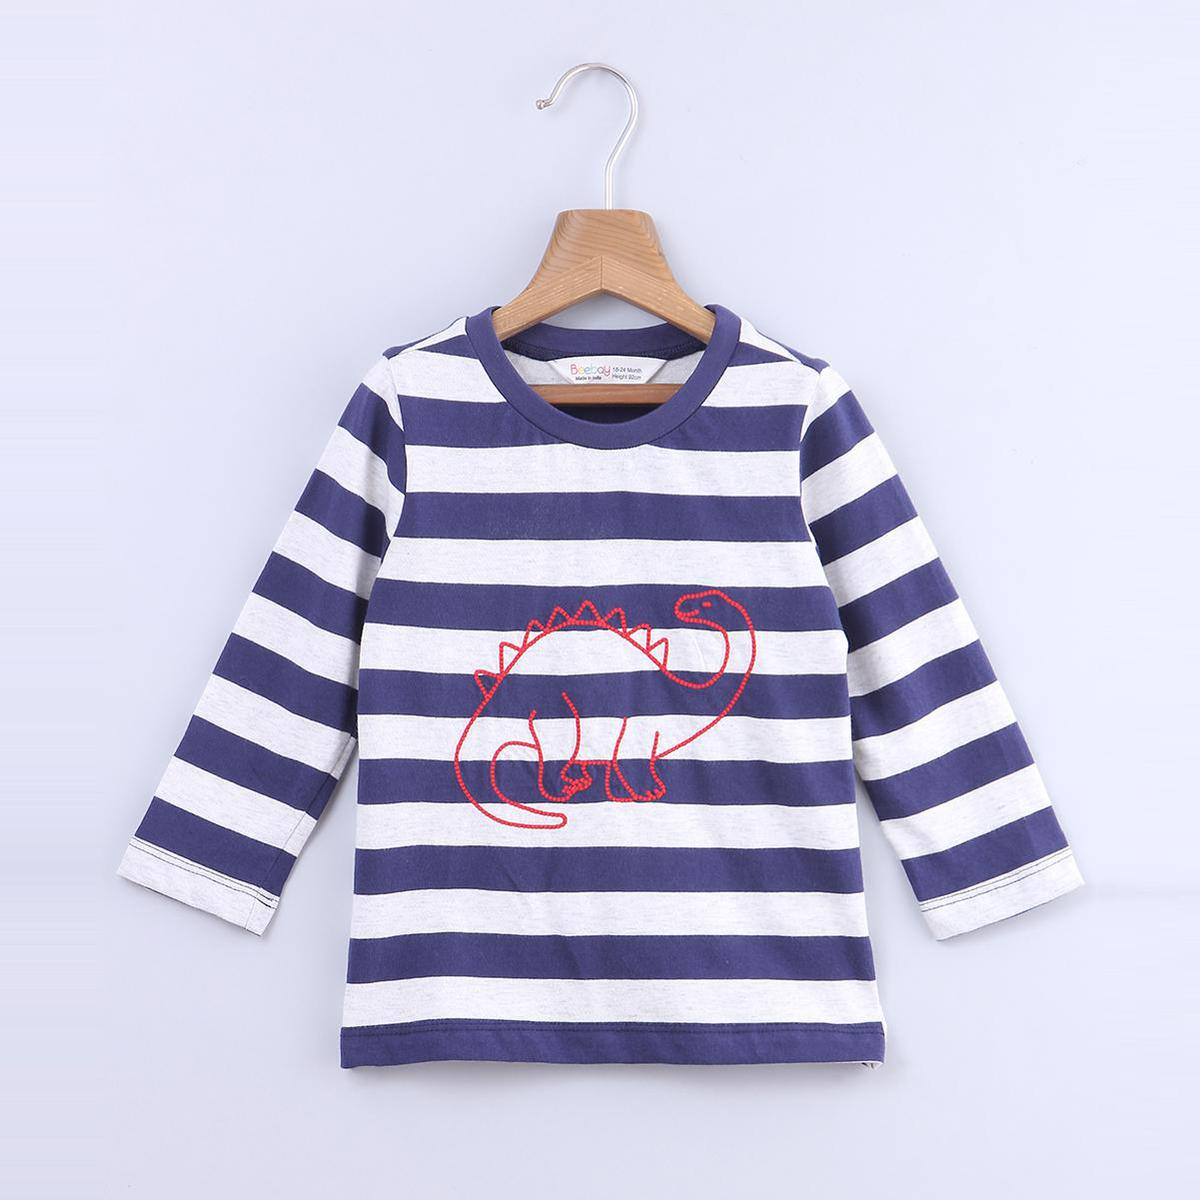 Beebay - Navy Blue Colored Dino Embroidery Striper Cotton T-shirts For Infants Boys